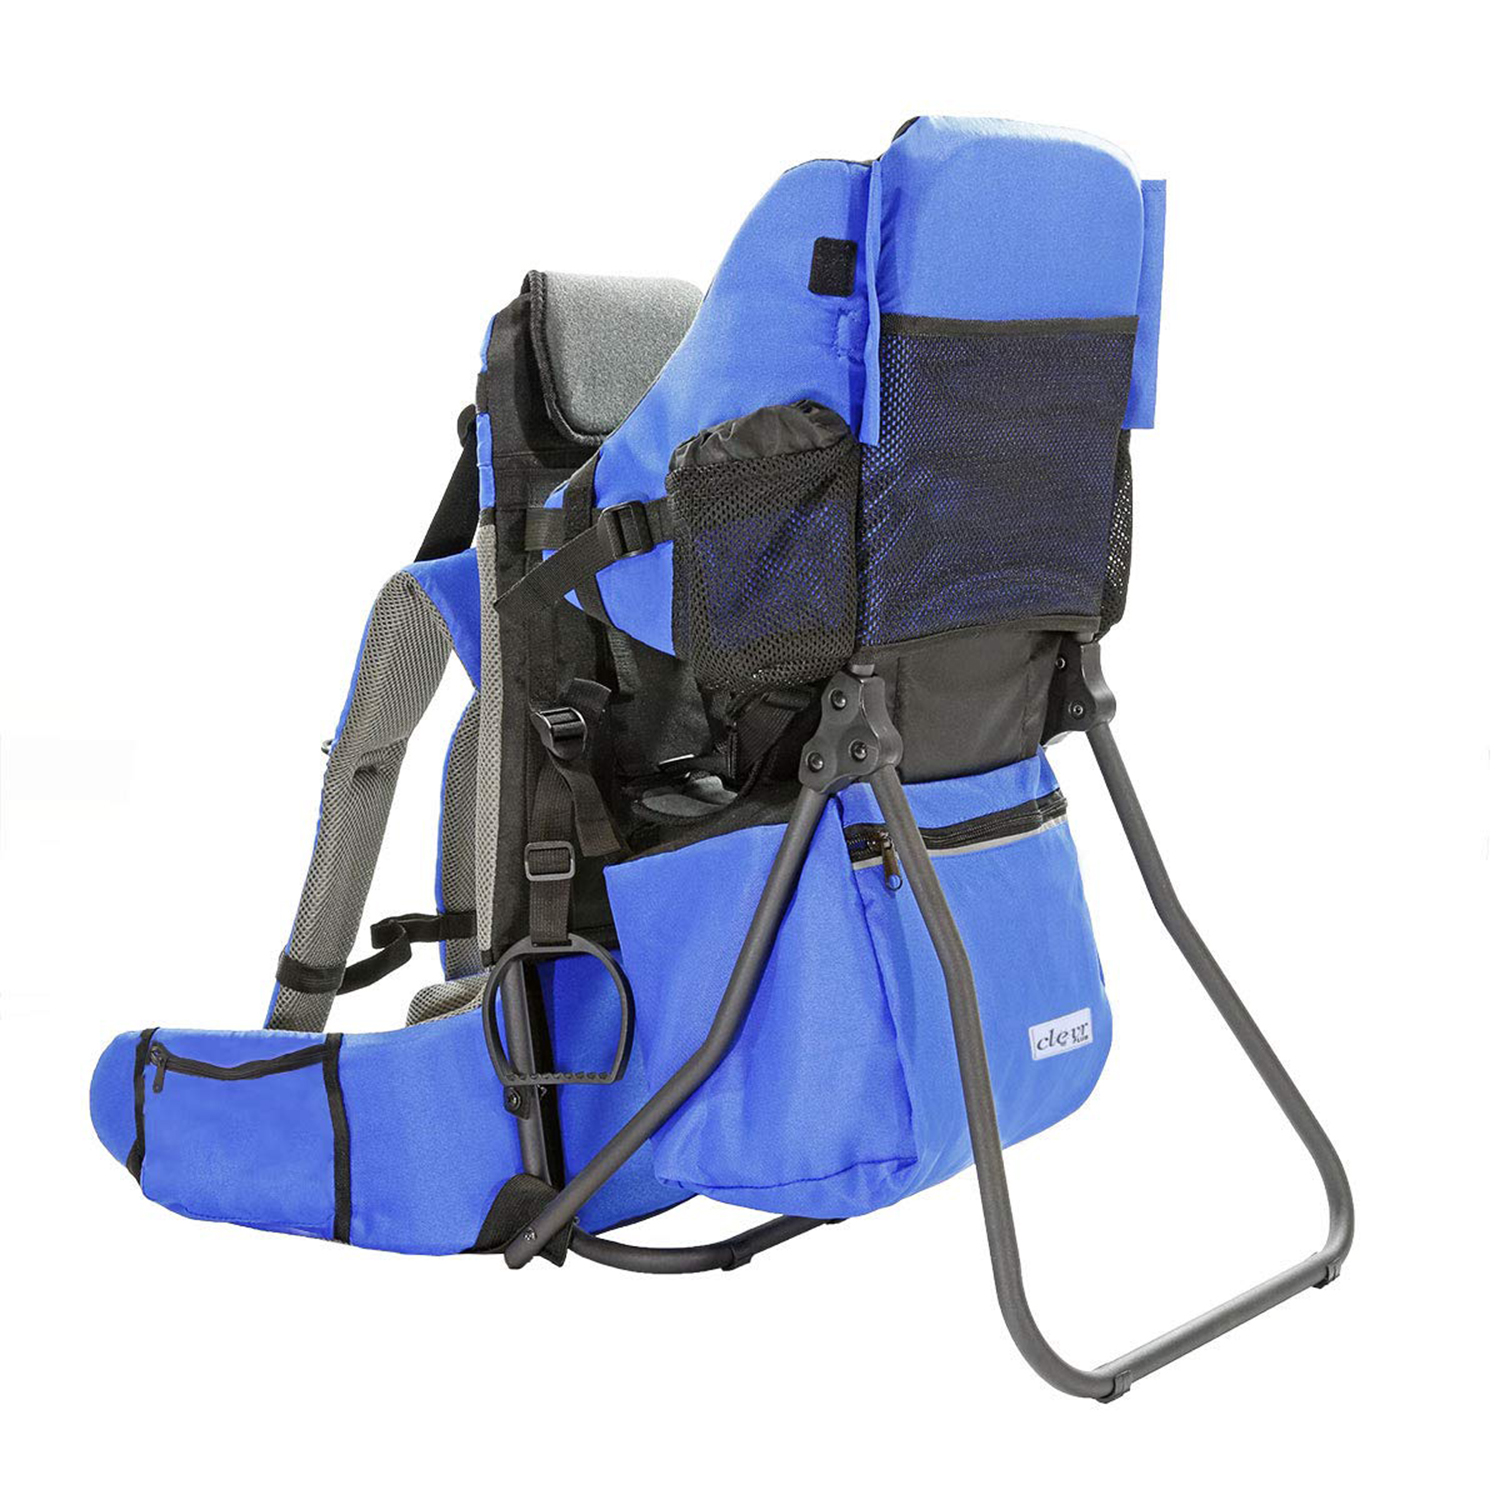 Best Hiking Backpack Carrier With Storage Space (Runner-Up): ClevrPlus Cross Country Baby Backpack